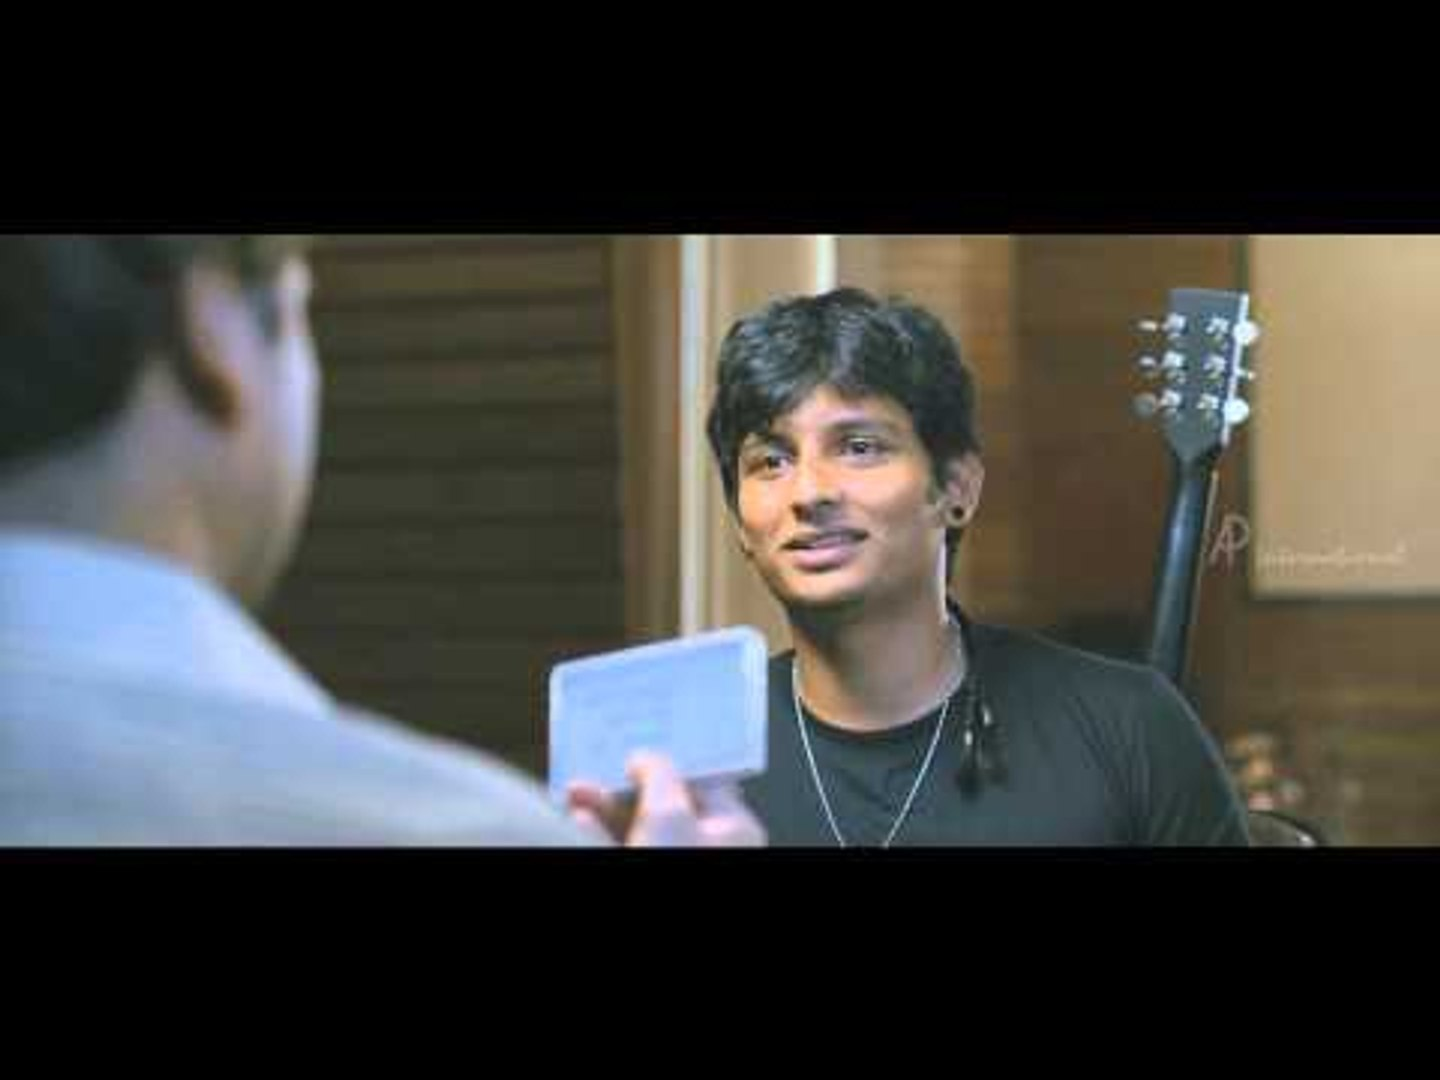 David Tamil Movie Songs | 1080P HD | Songs Online | Anirudh Ravichander | Machi Song Video |